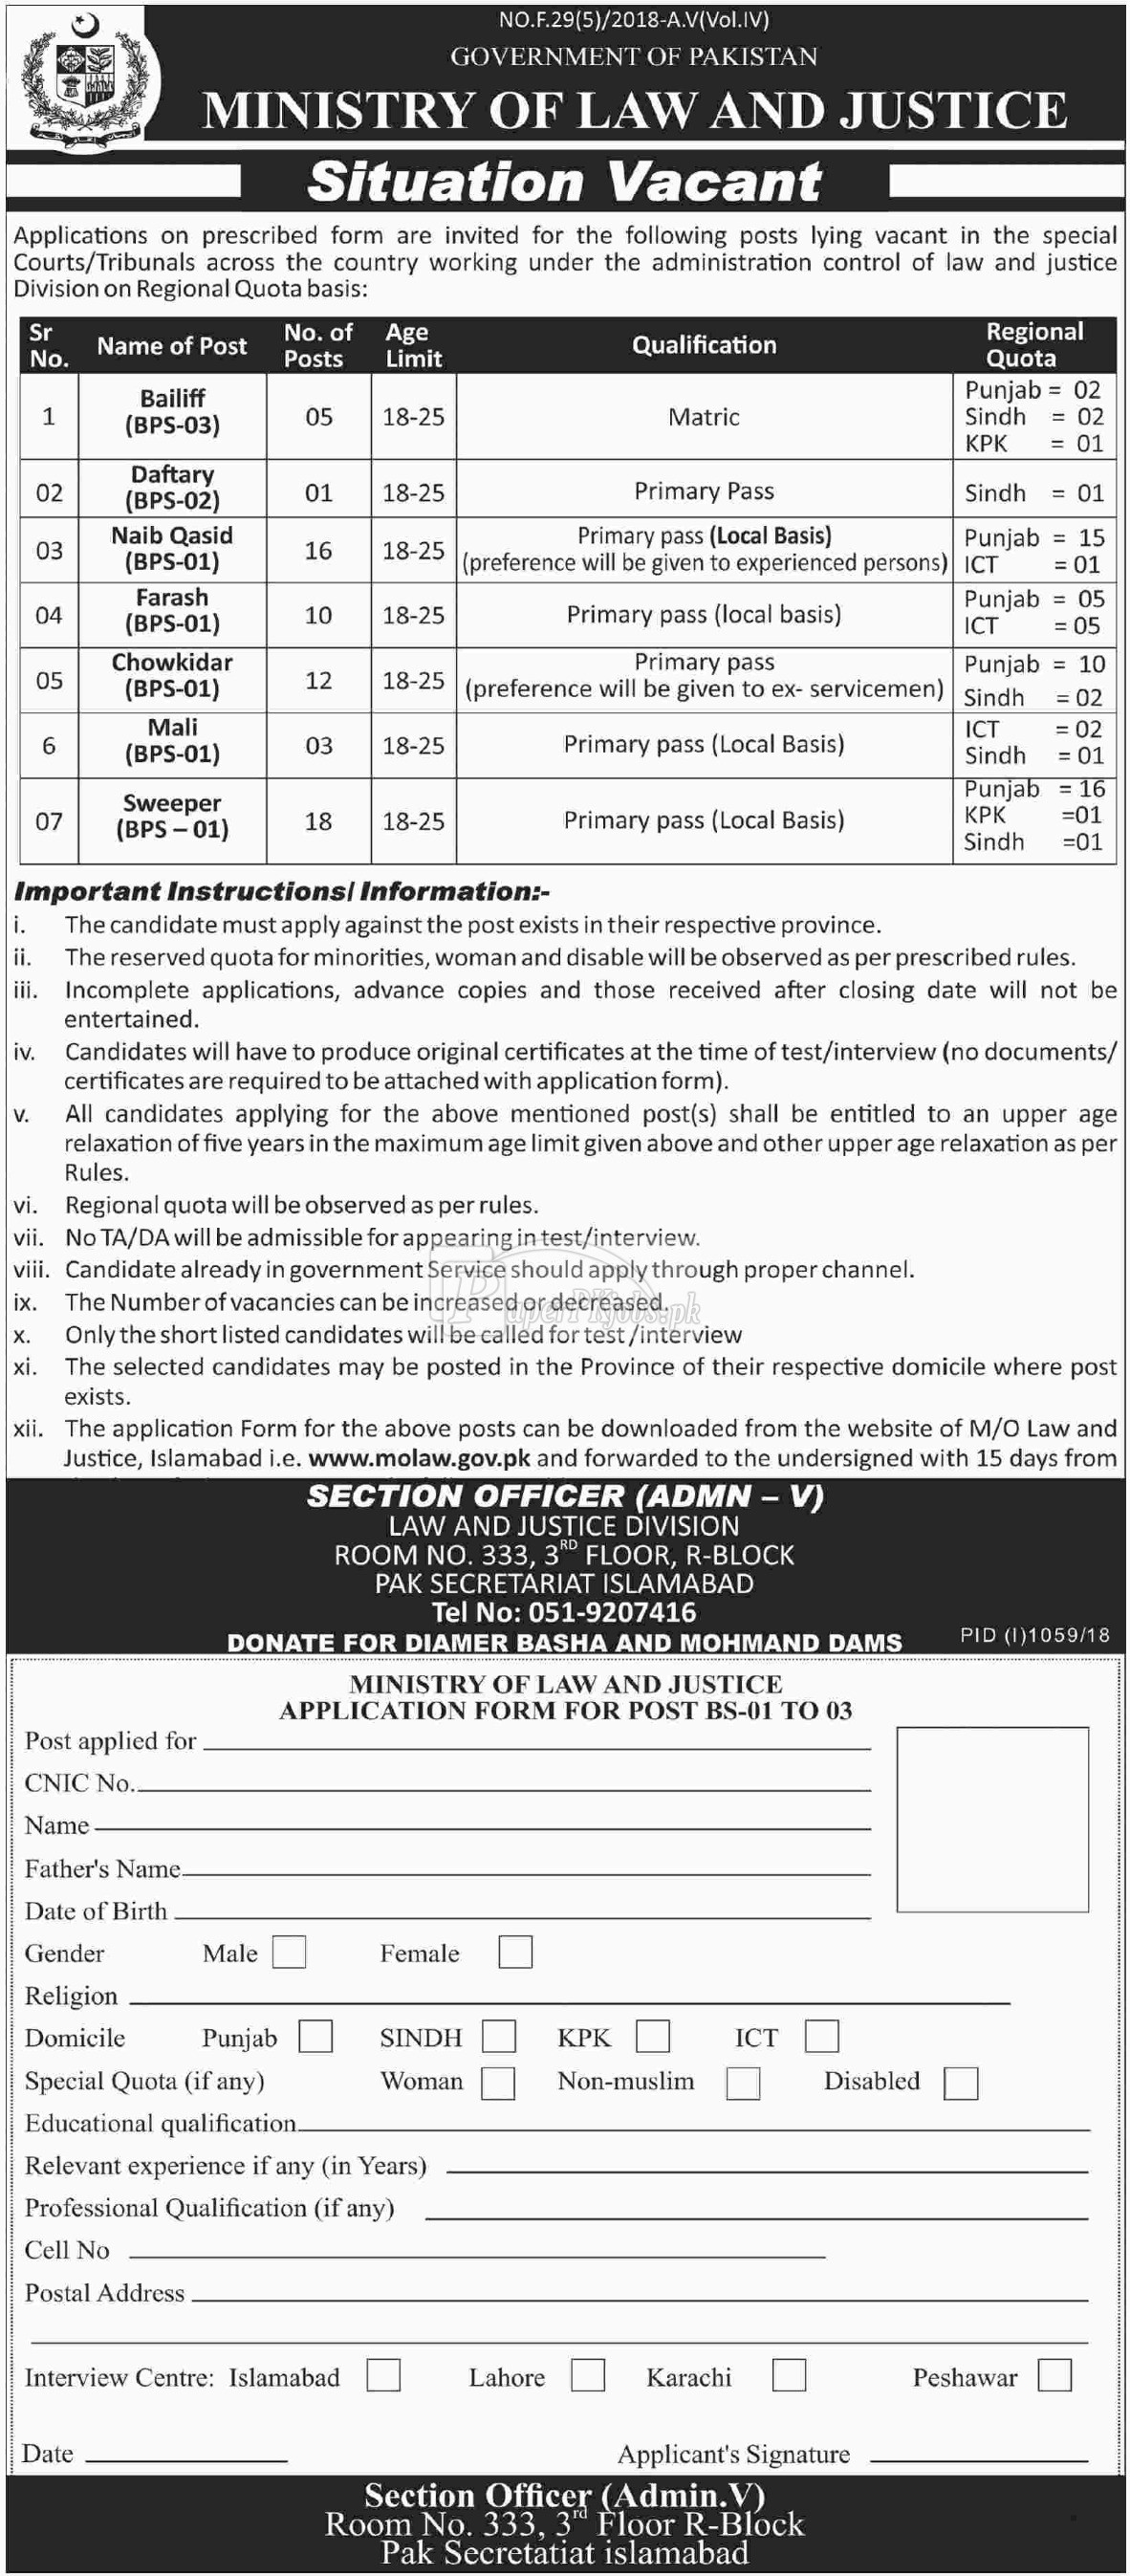 Ministry of Law and Justice Jobs 2018